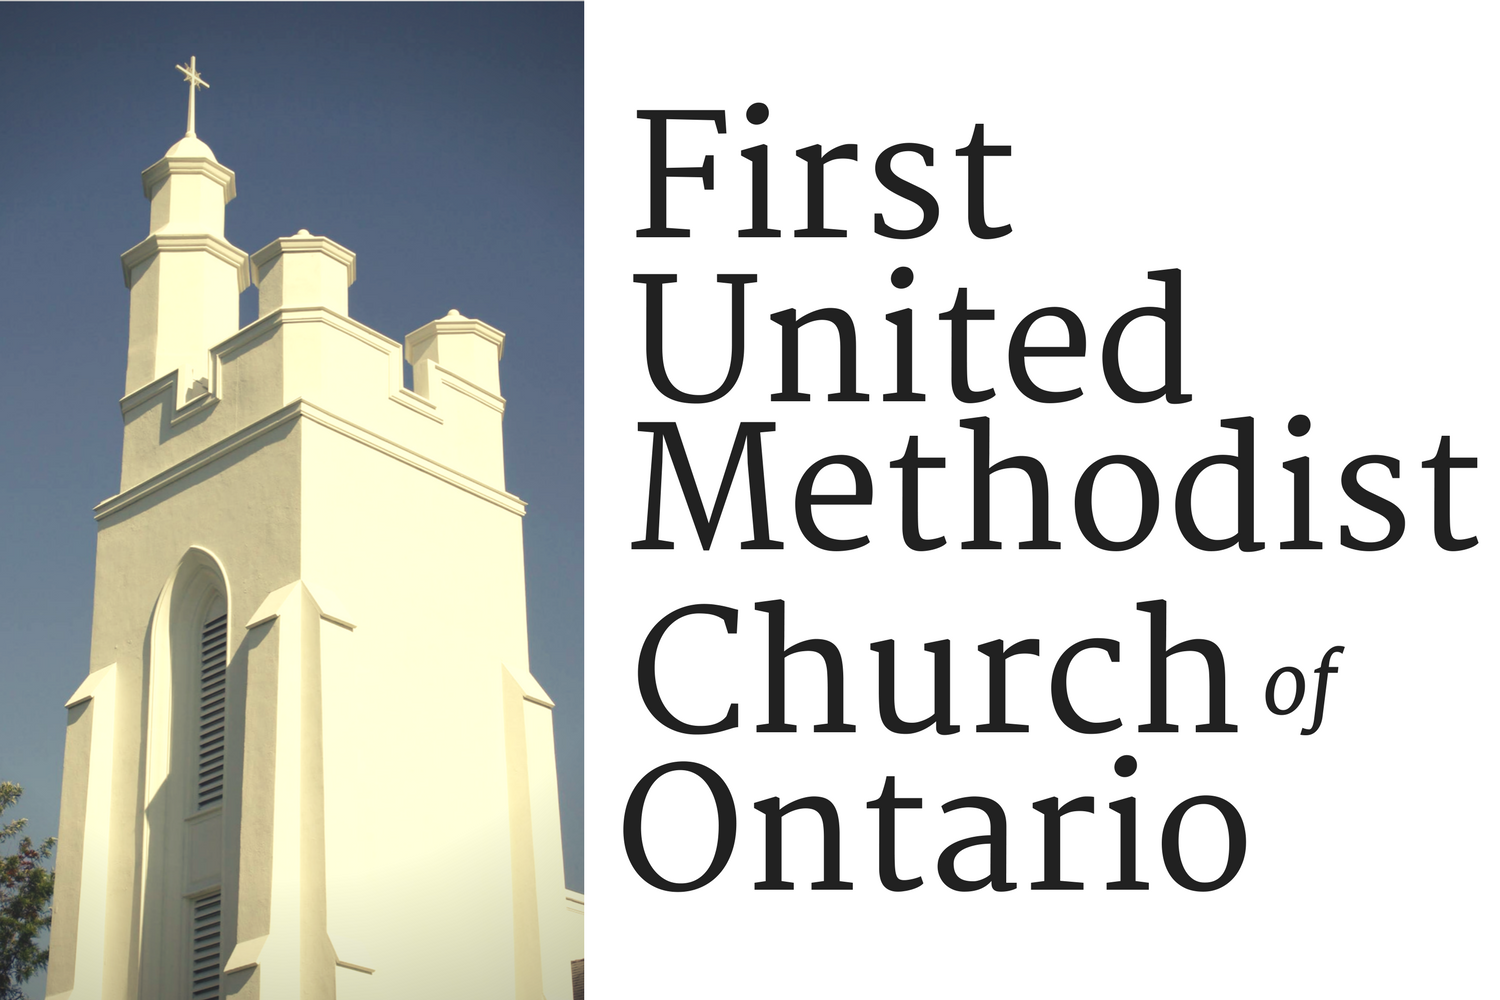 First United Methodist Church of Ontario